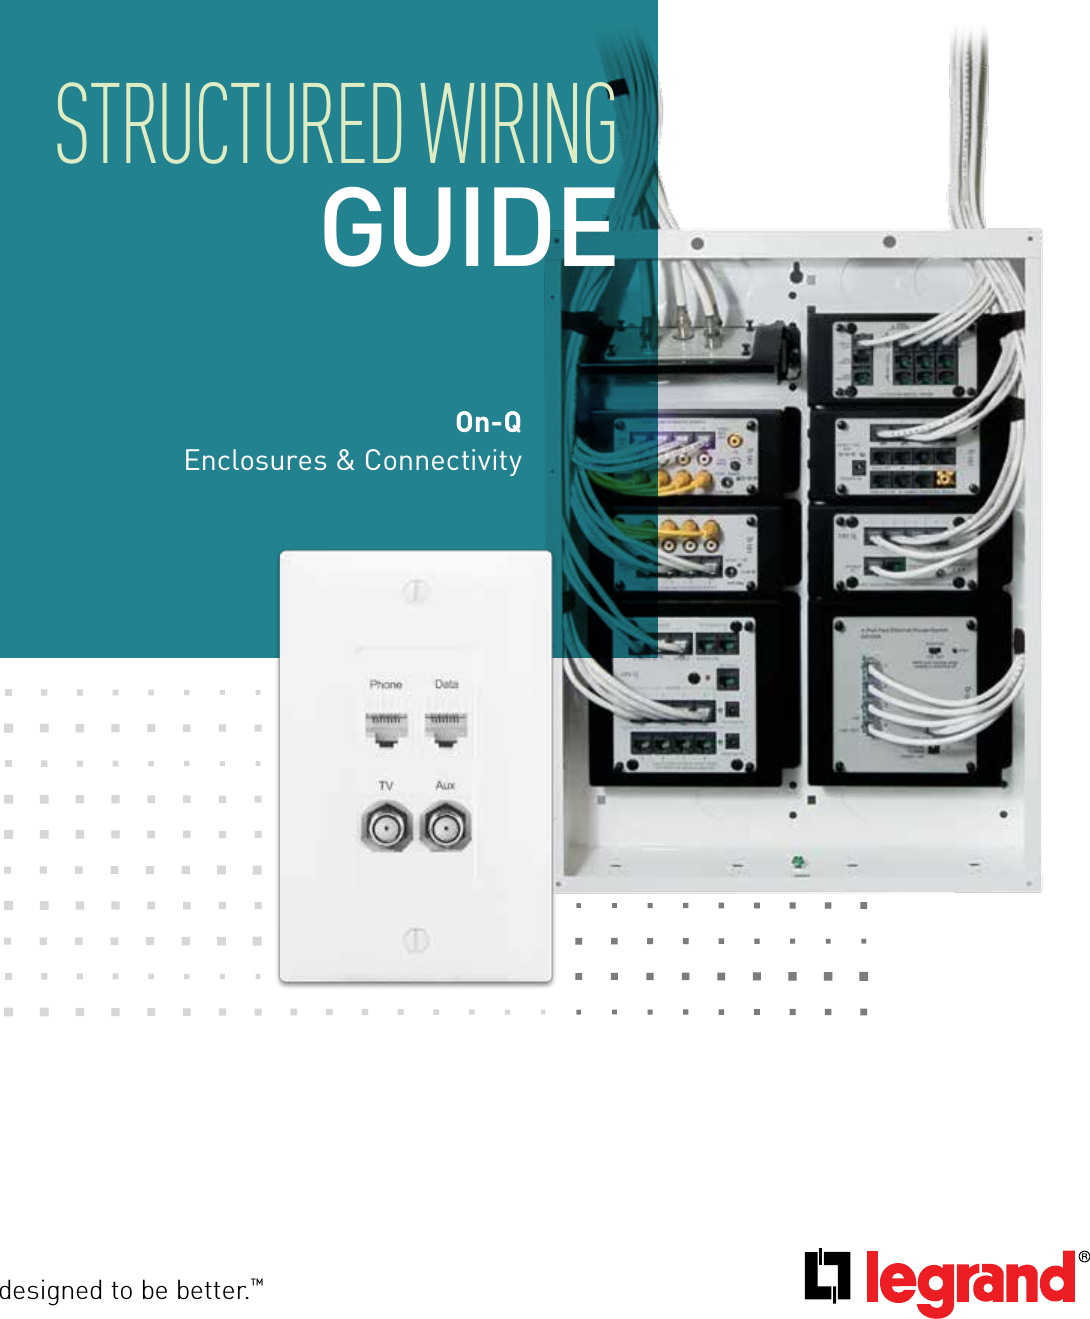 1000450586 Catalog Structured Wiring Guide